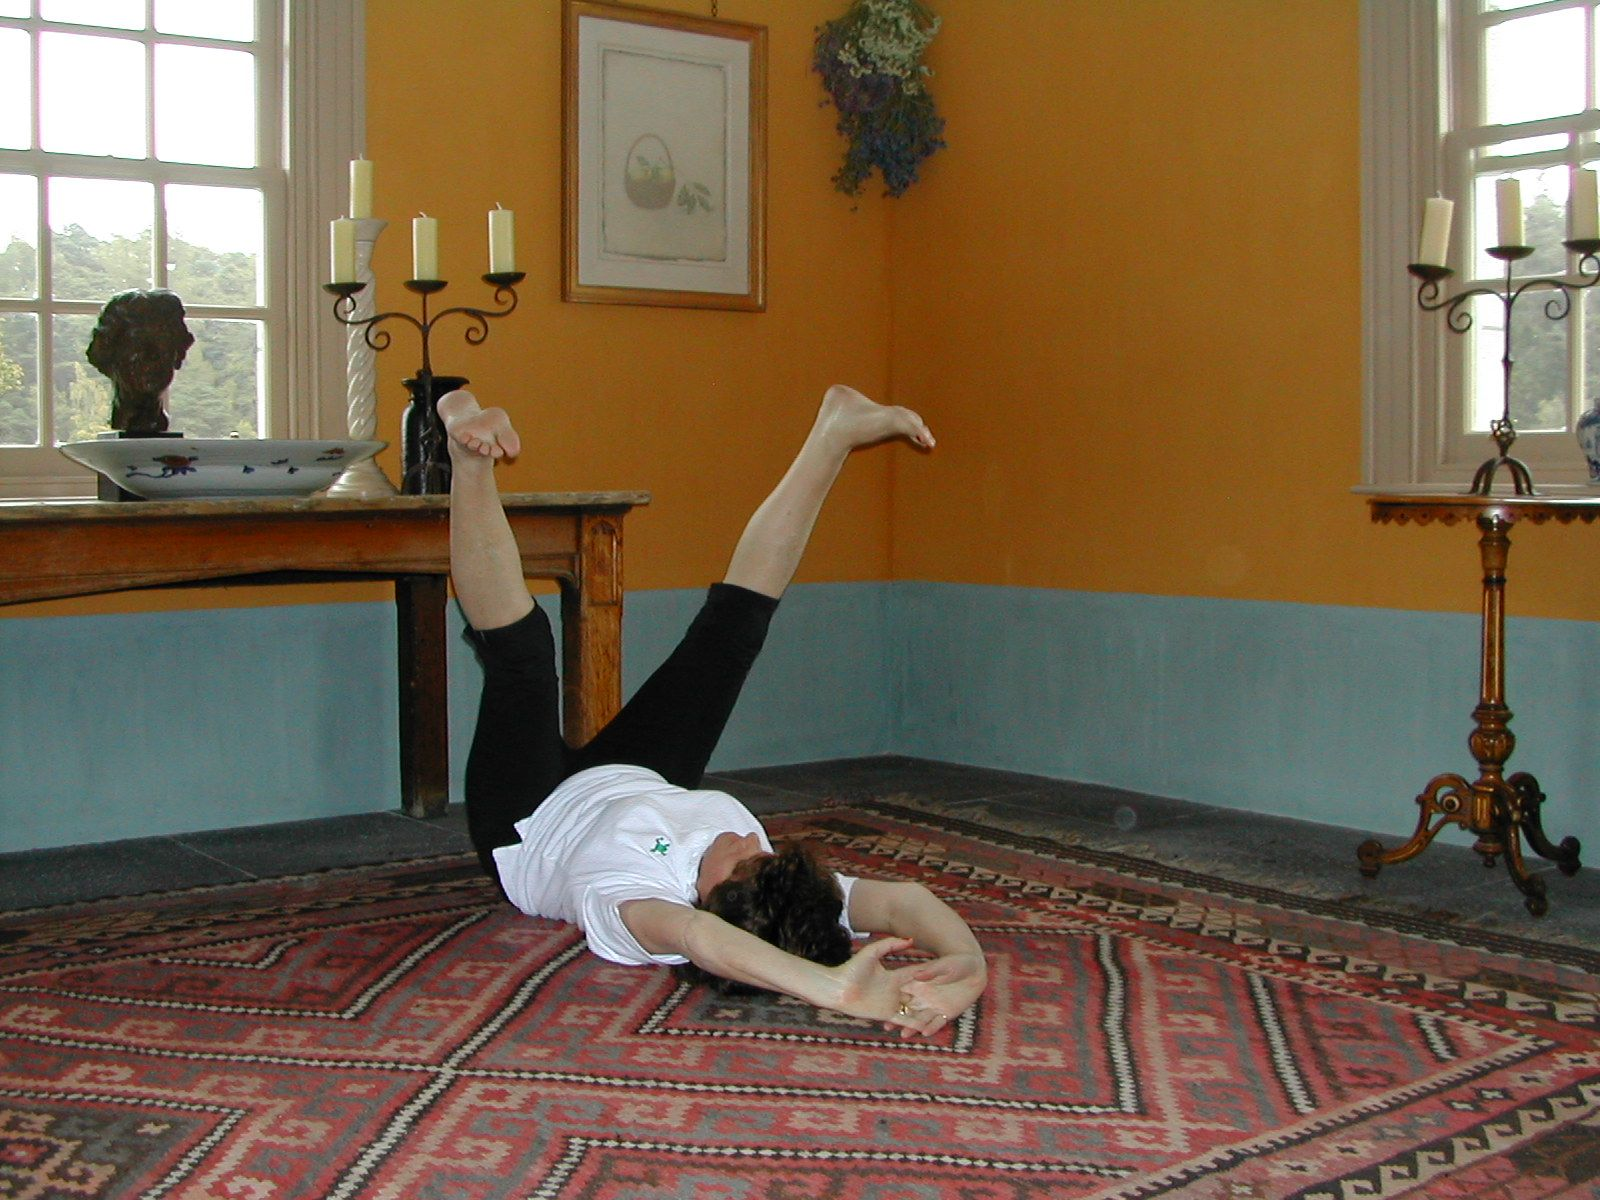 Lower Abs Strengthening is exercise 2 in Sarah Key's list of the best yoga for lower back pain